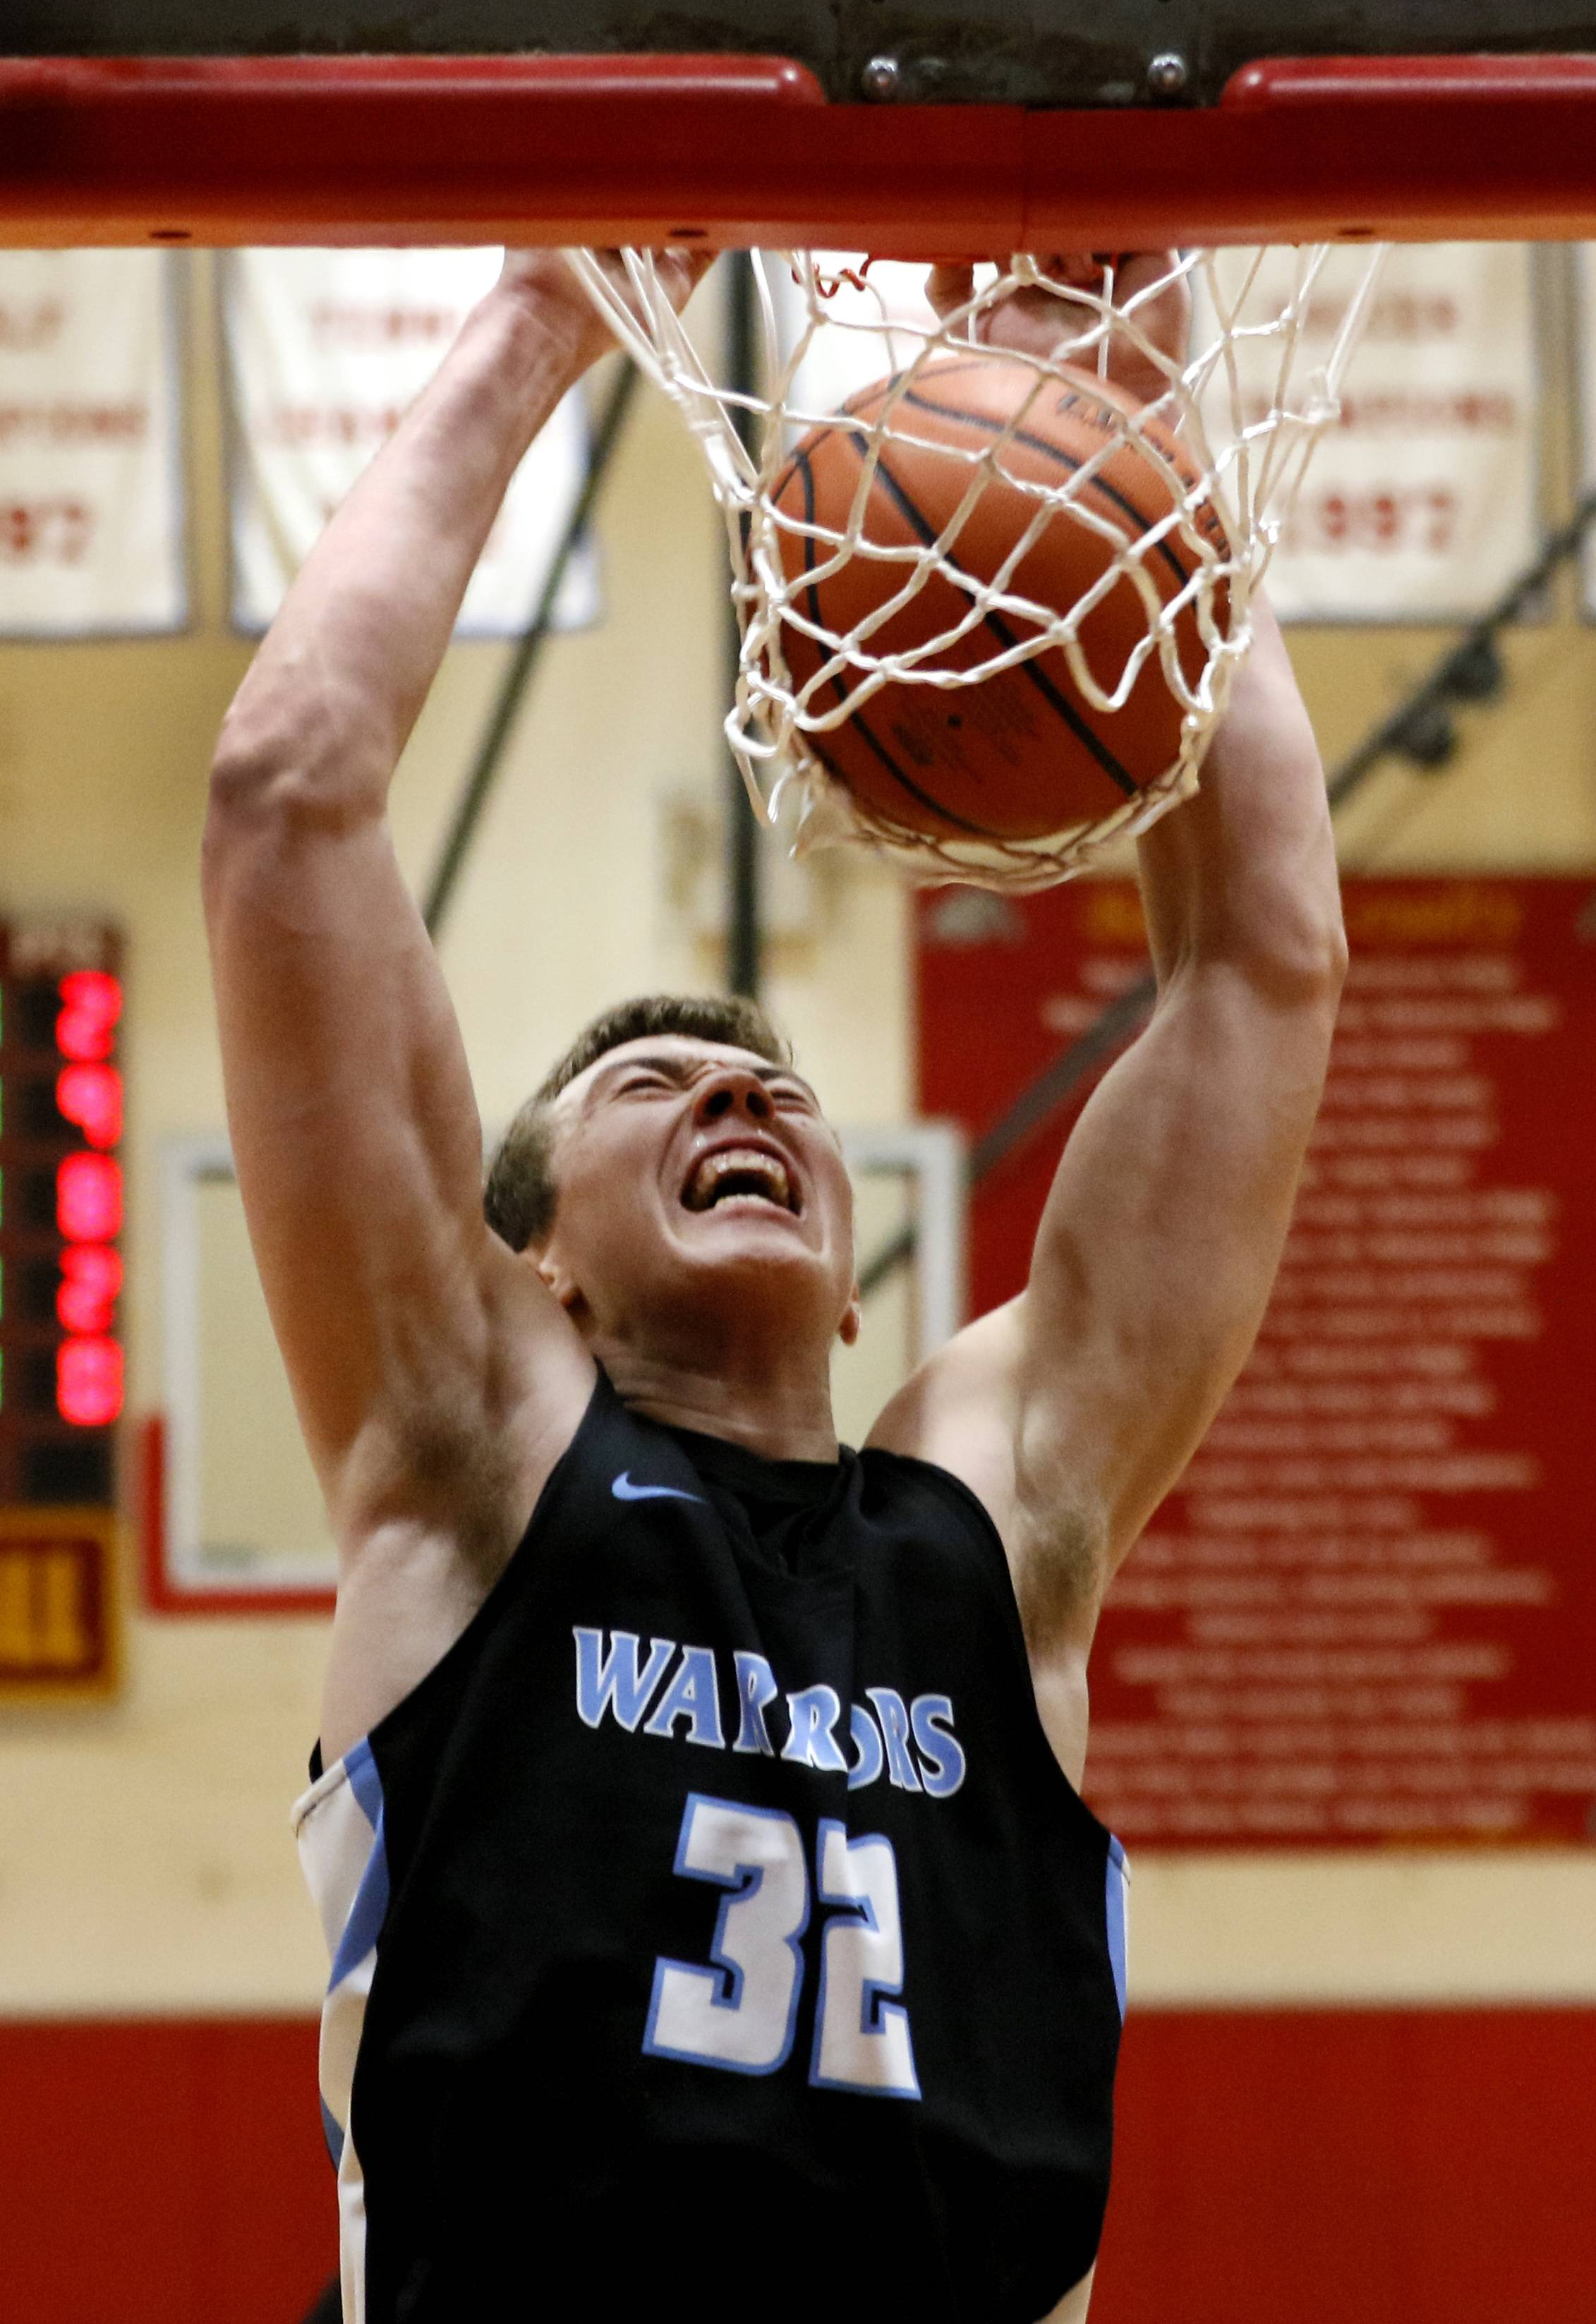 Willowbrook's Ethan Chuemer jams the ball against West Aurora during the 25th annual Jim & Sylvia Roberts Night of Hoops boys basketball game at Batavia High School.